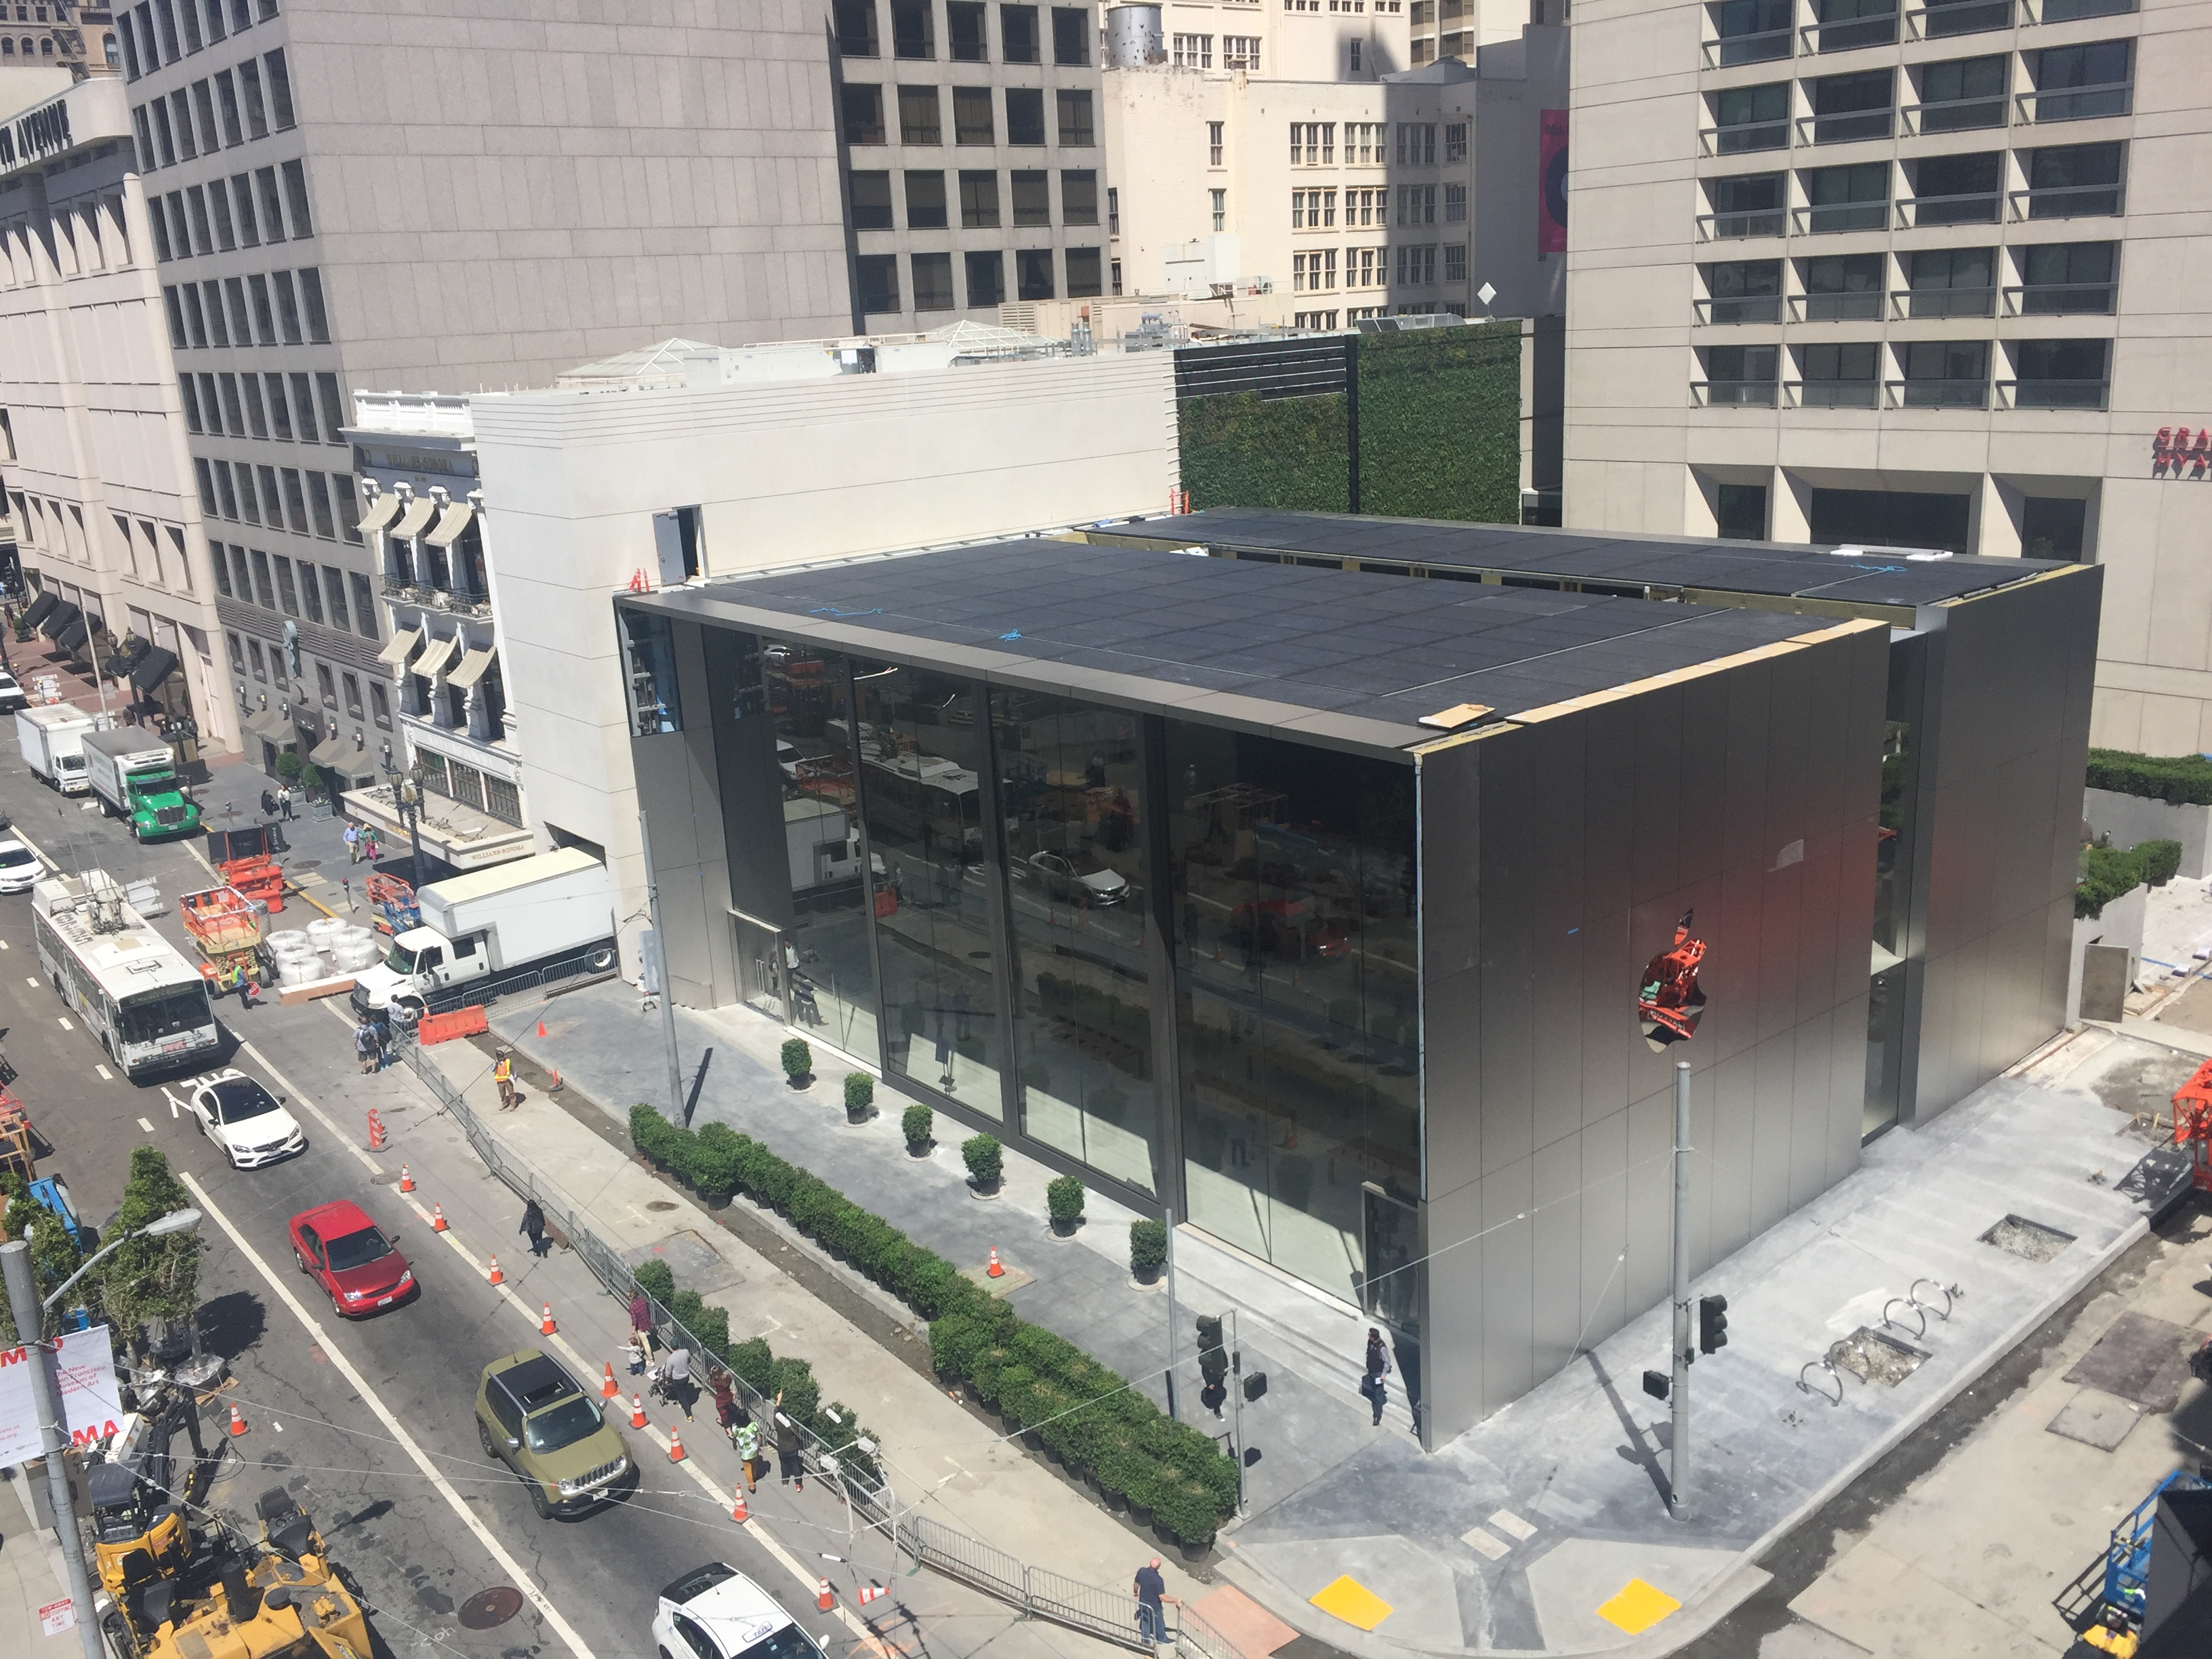 Apple's new flagship store in San Francisco's Union Square opens May 21, 2016.